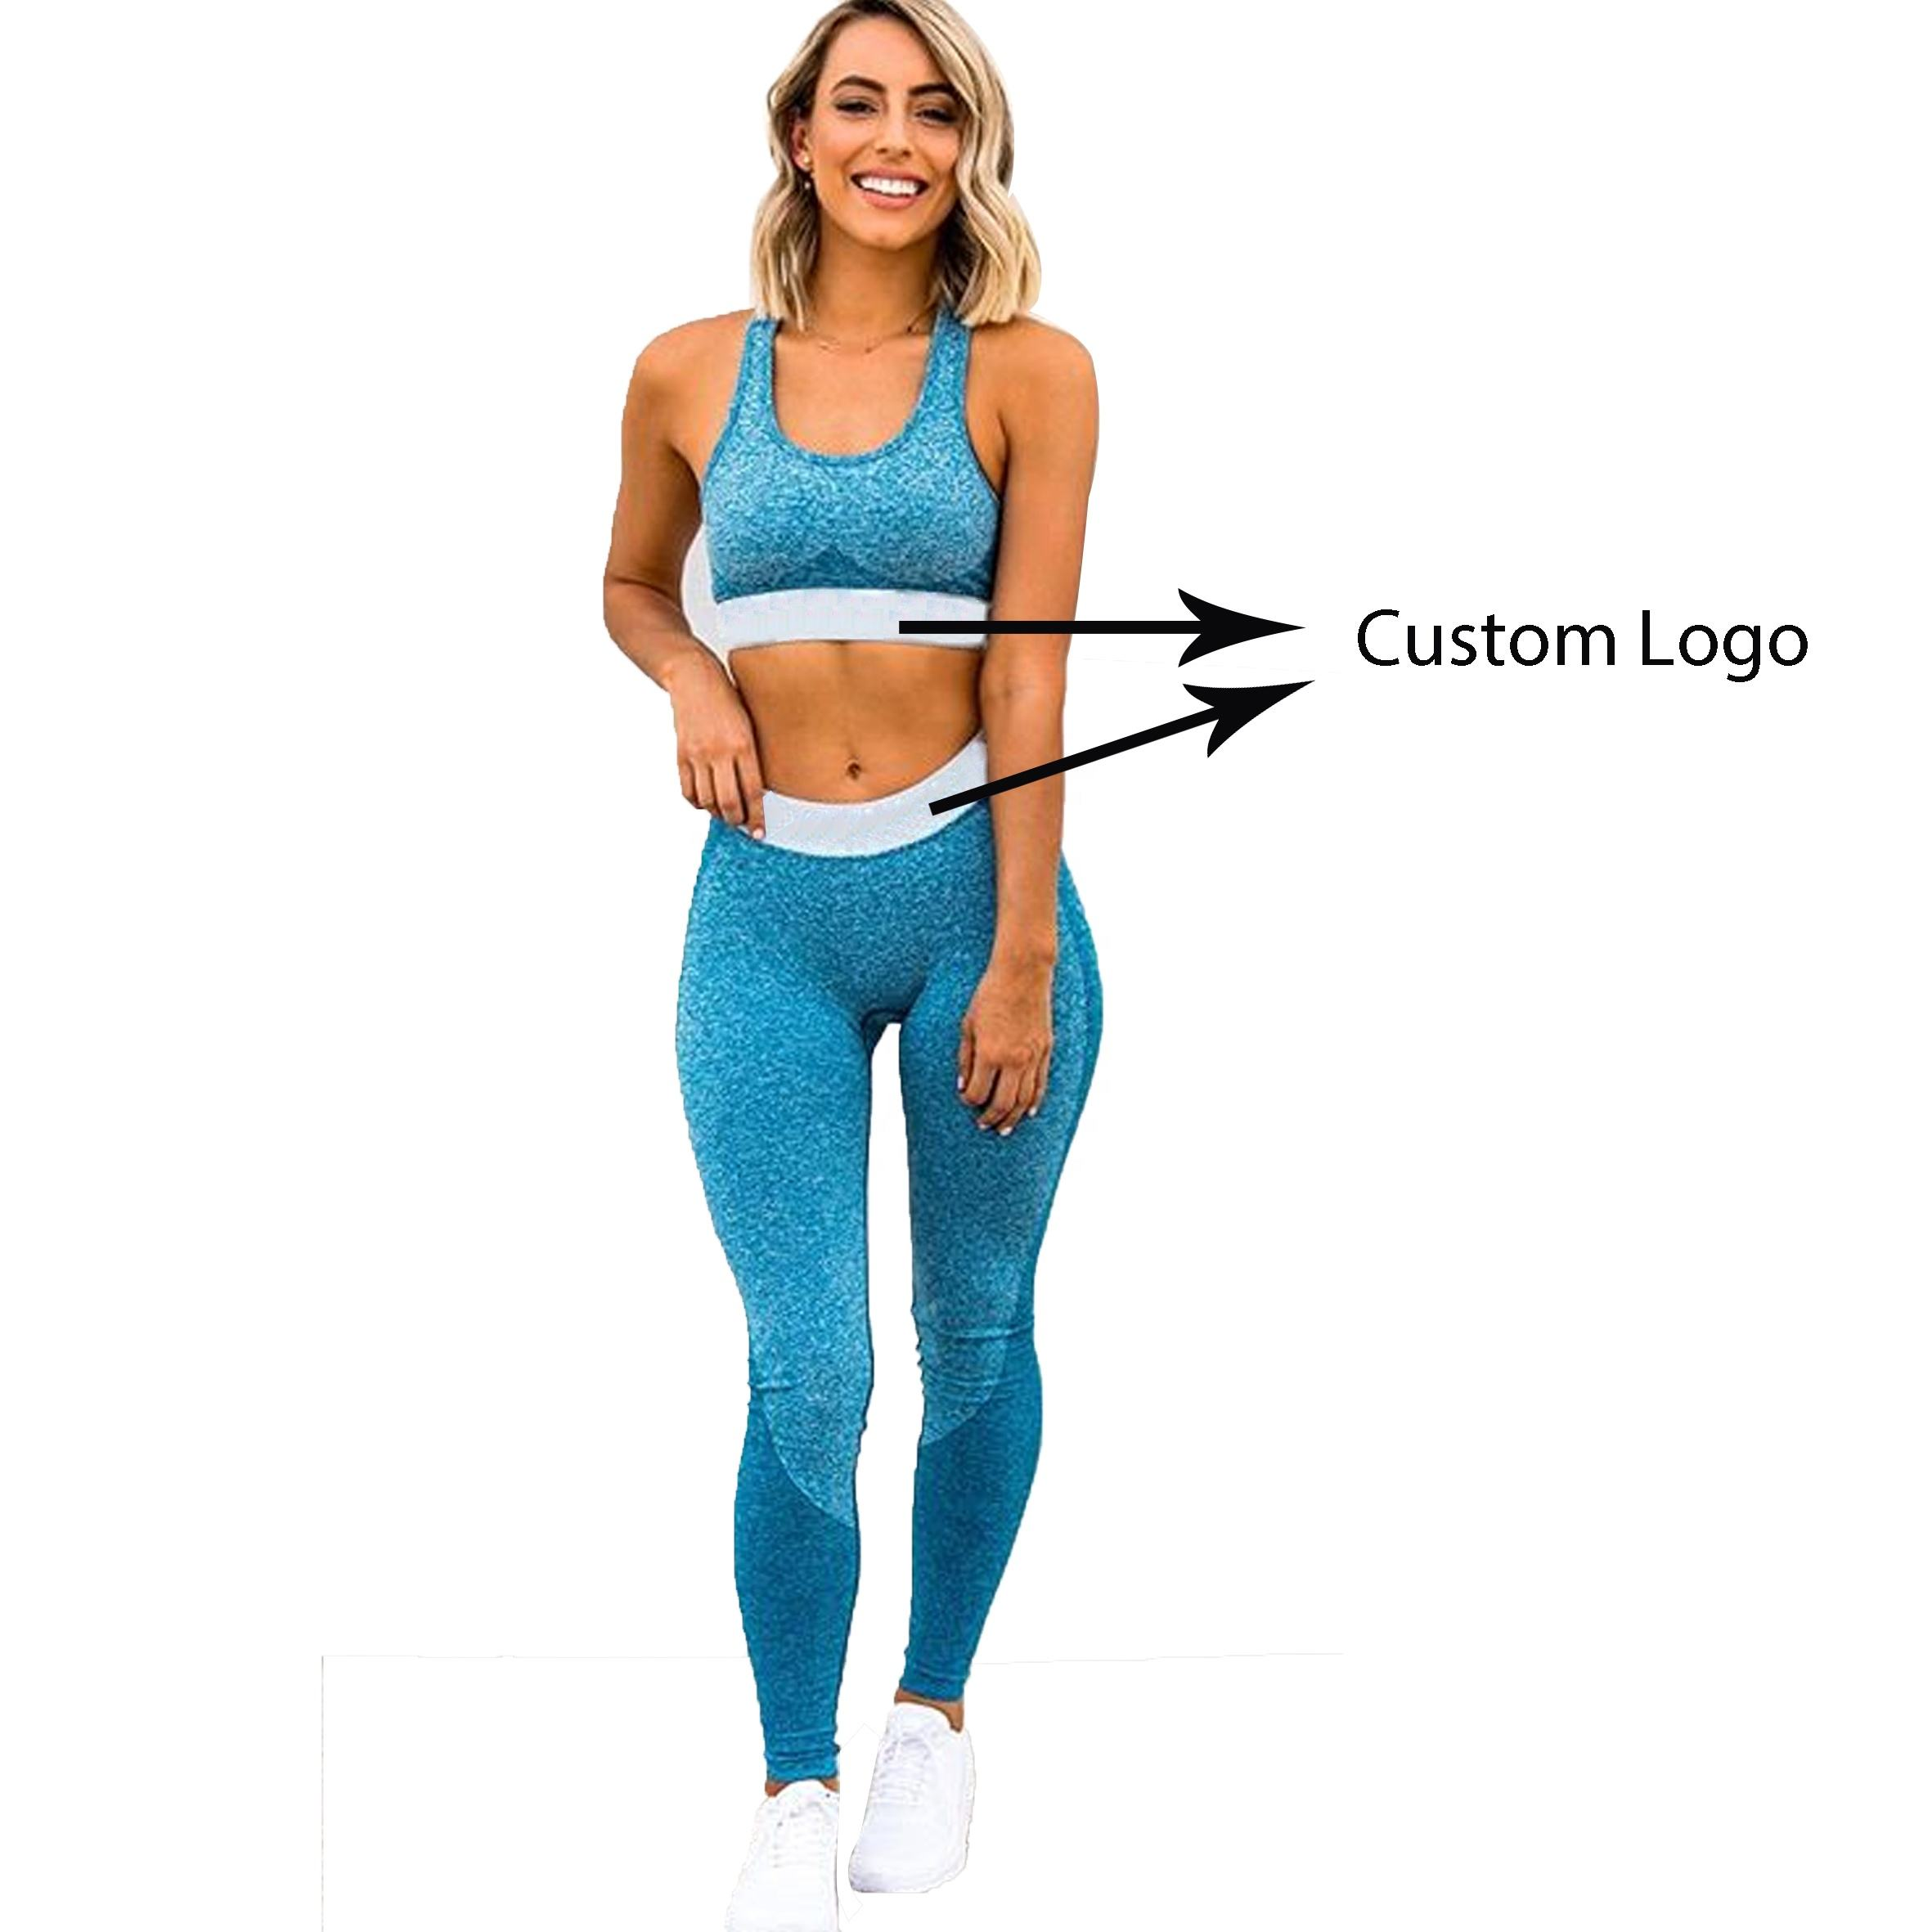 Custom High Waisted Workout Seamless Ombre Leggings and Gym Bra Set